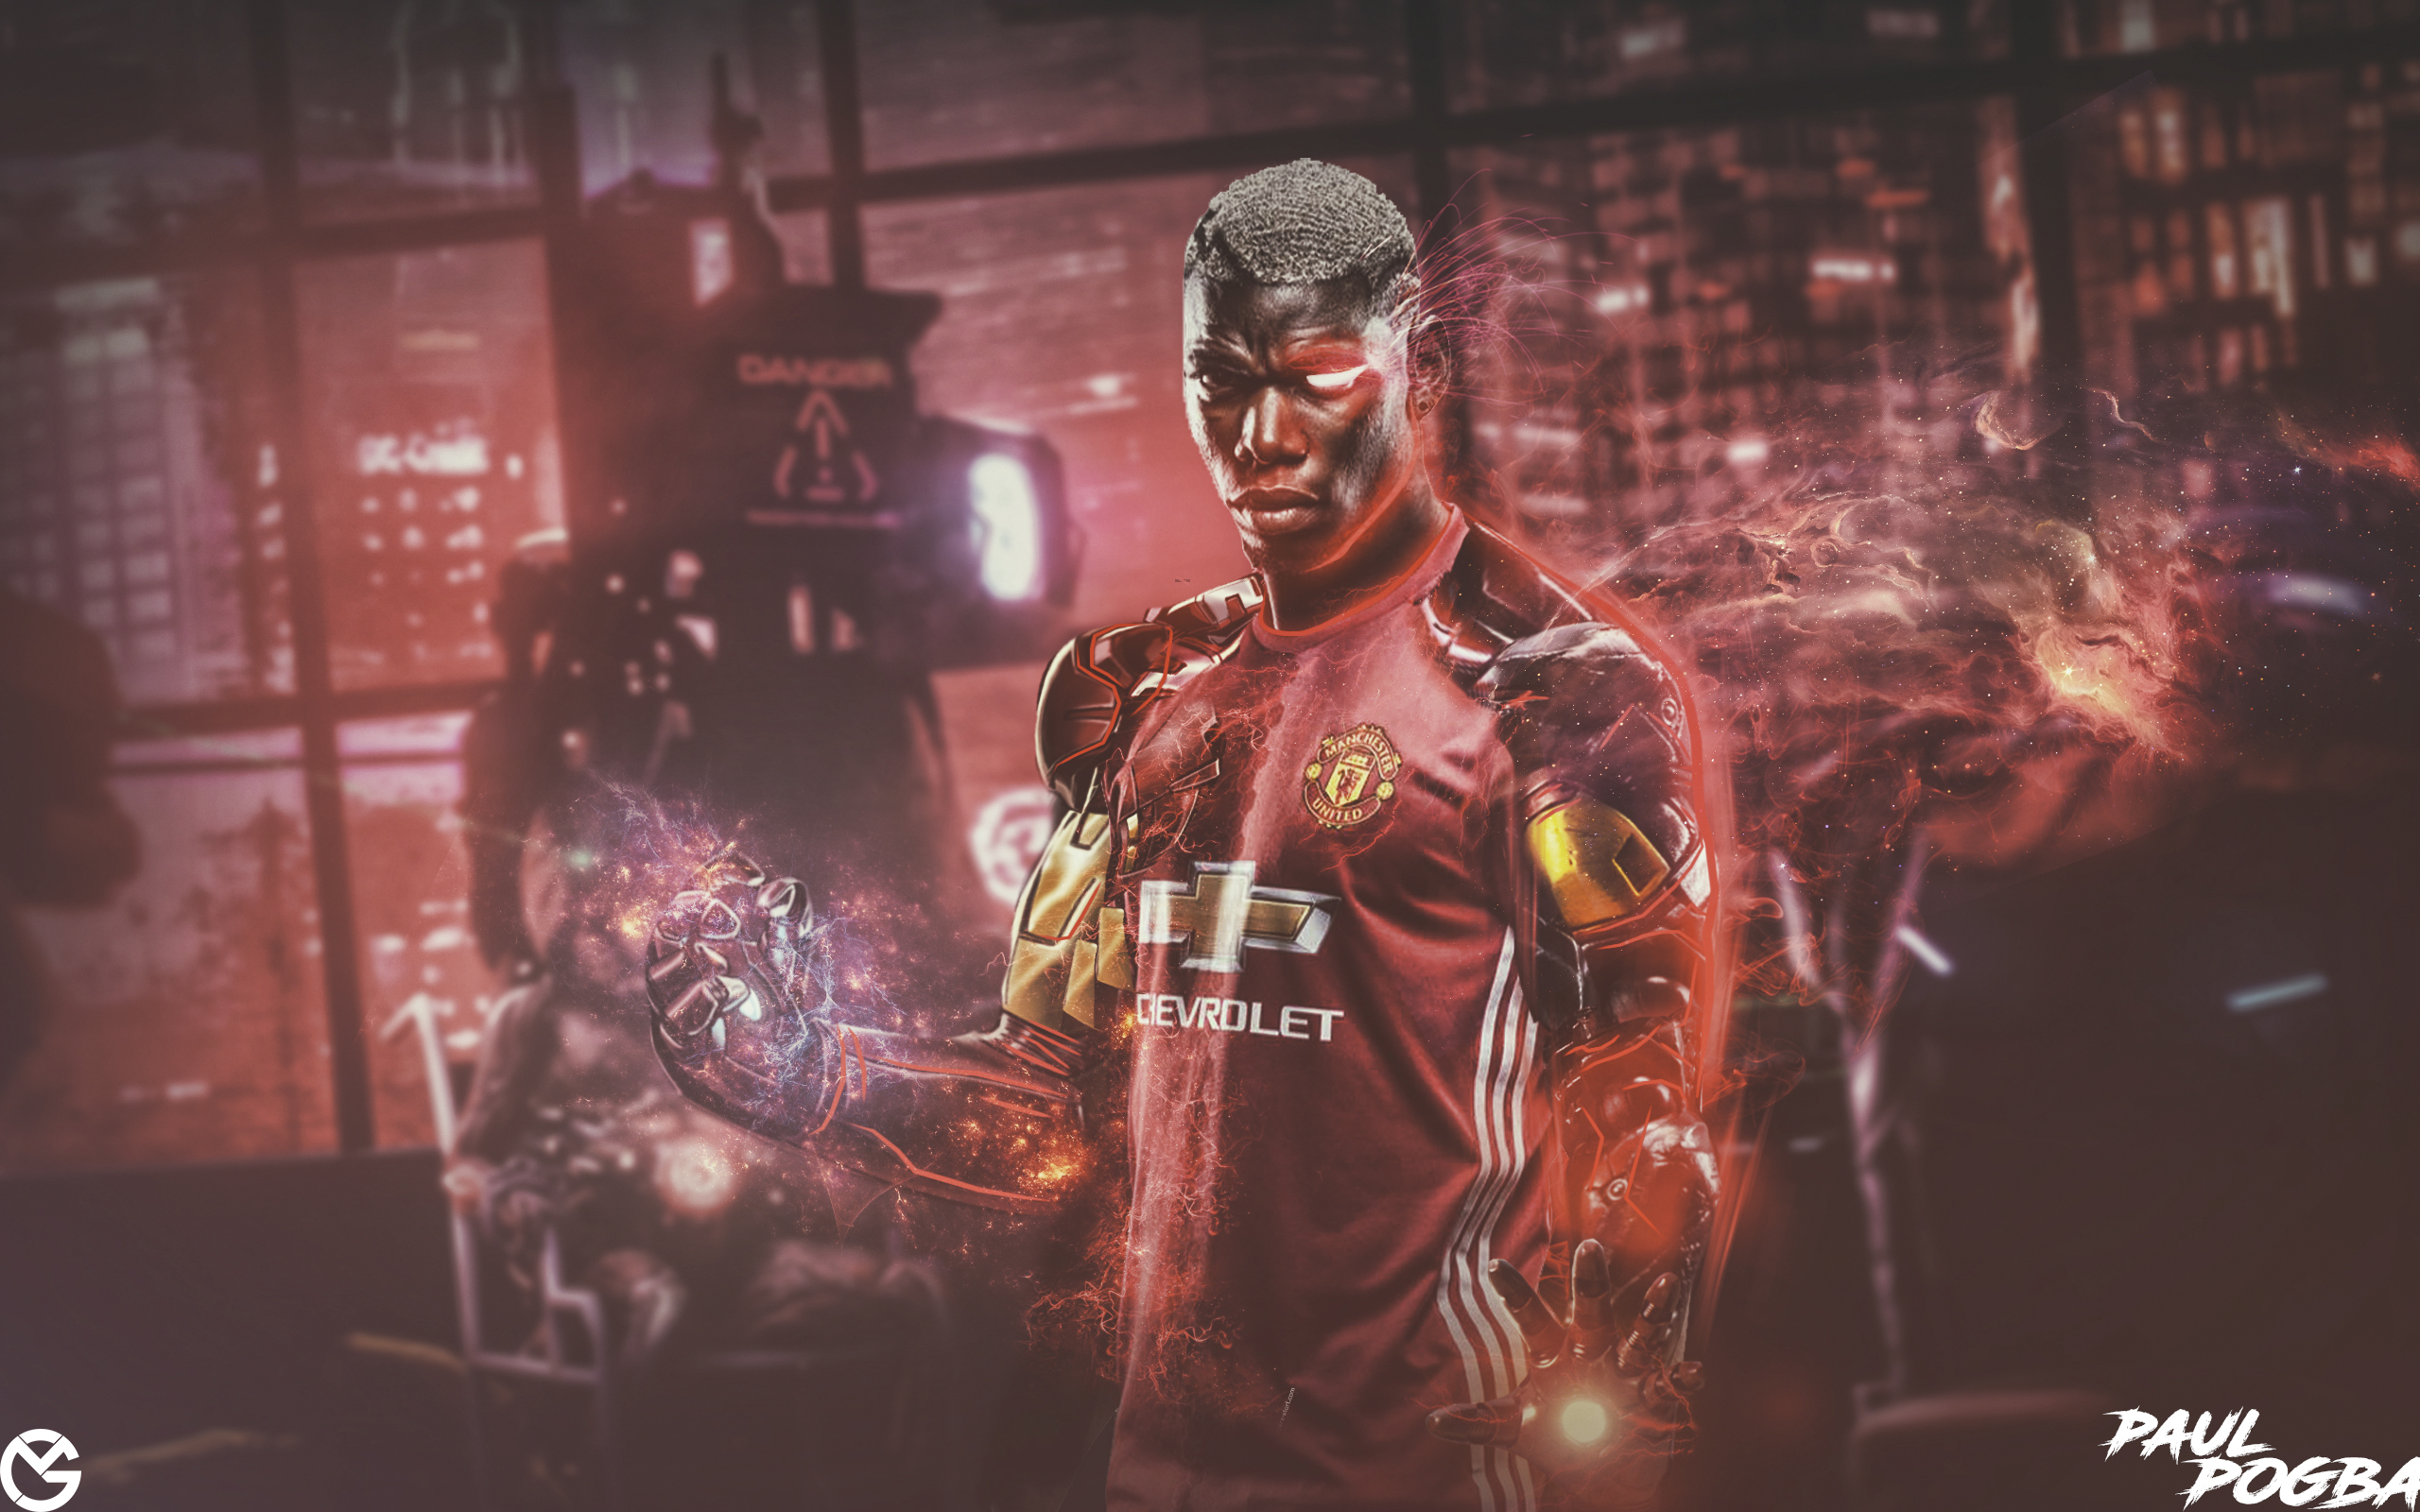 Paul Pogba Wallpaper By GraphicalManiacs On DeviantArt